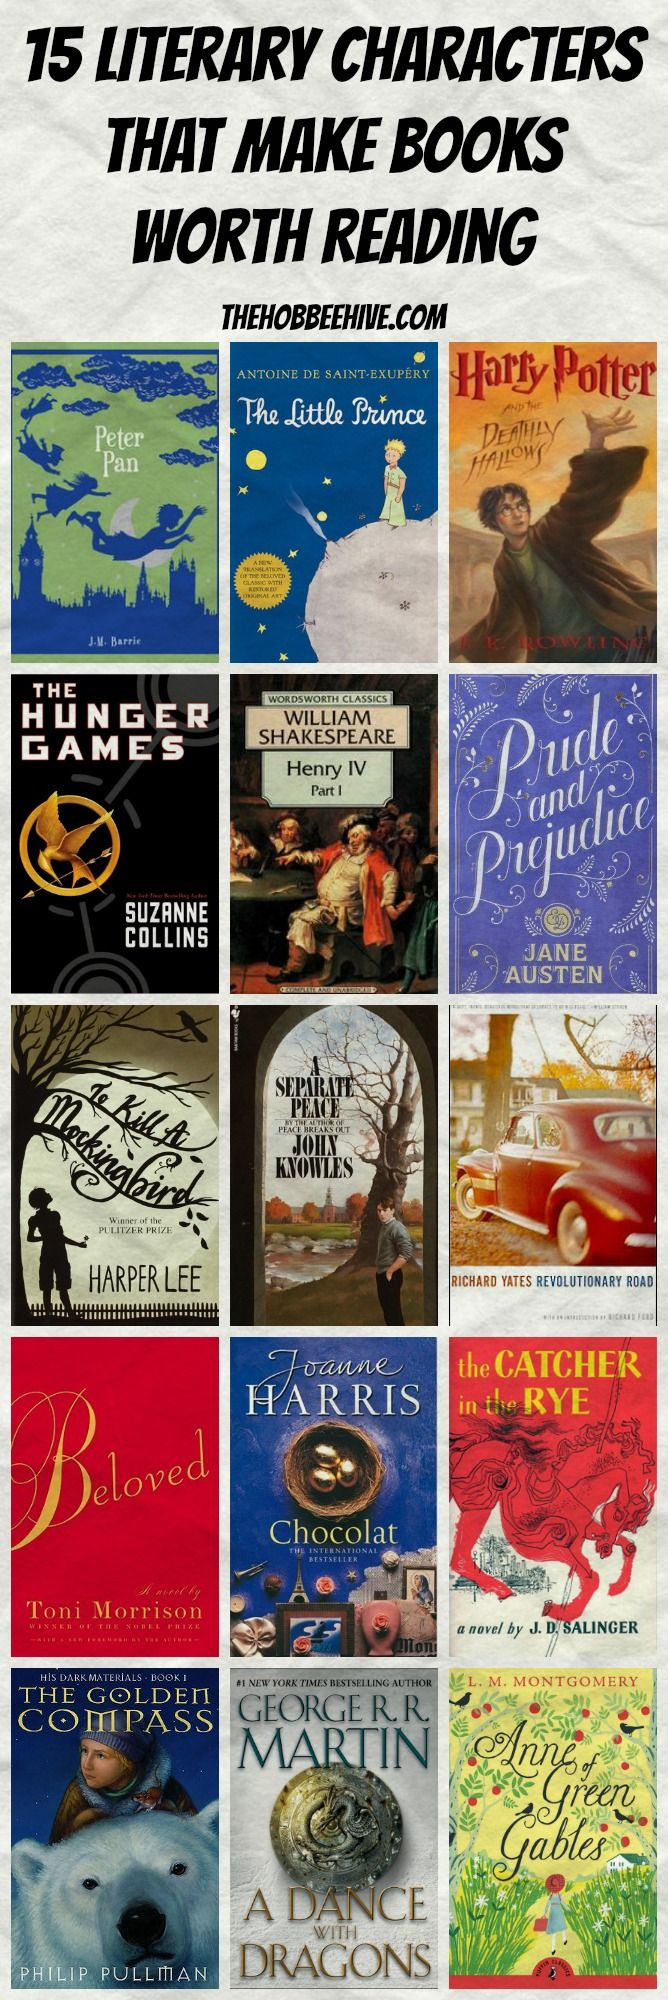 10 books worth reading on the road